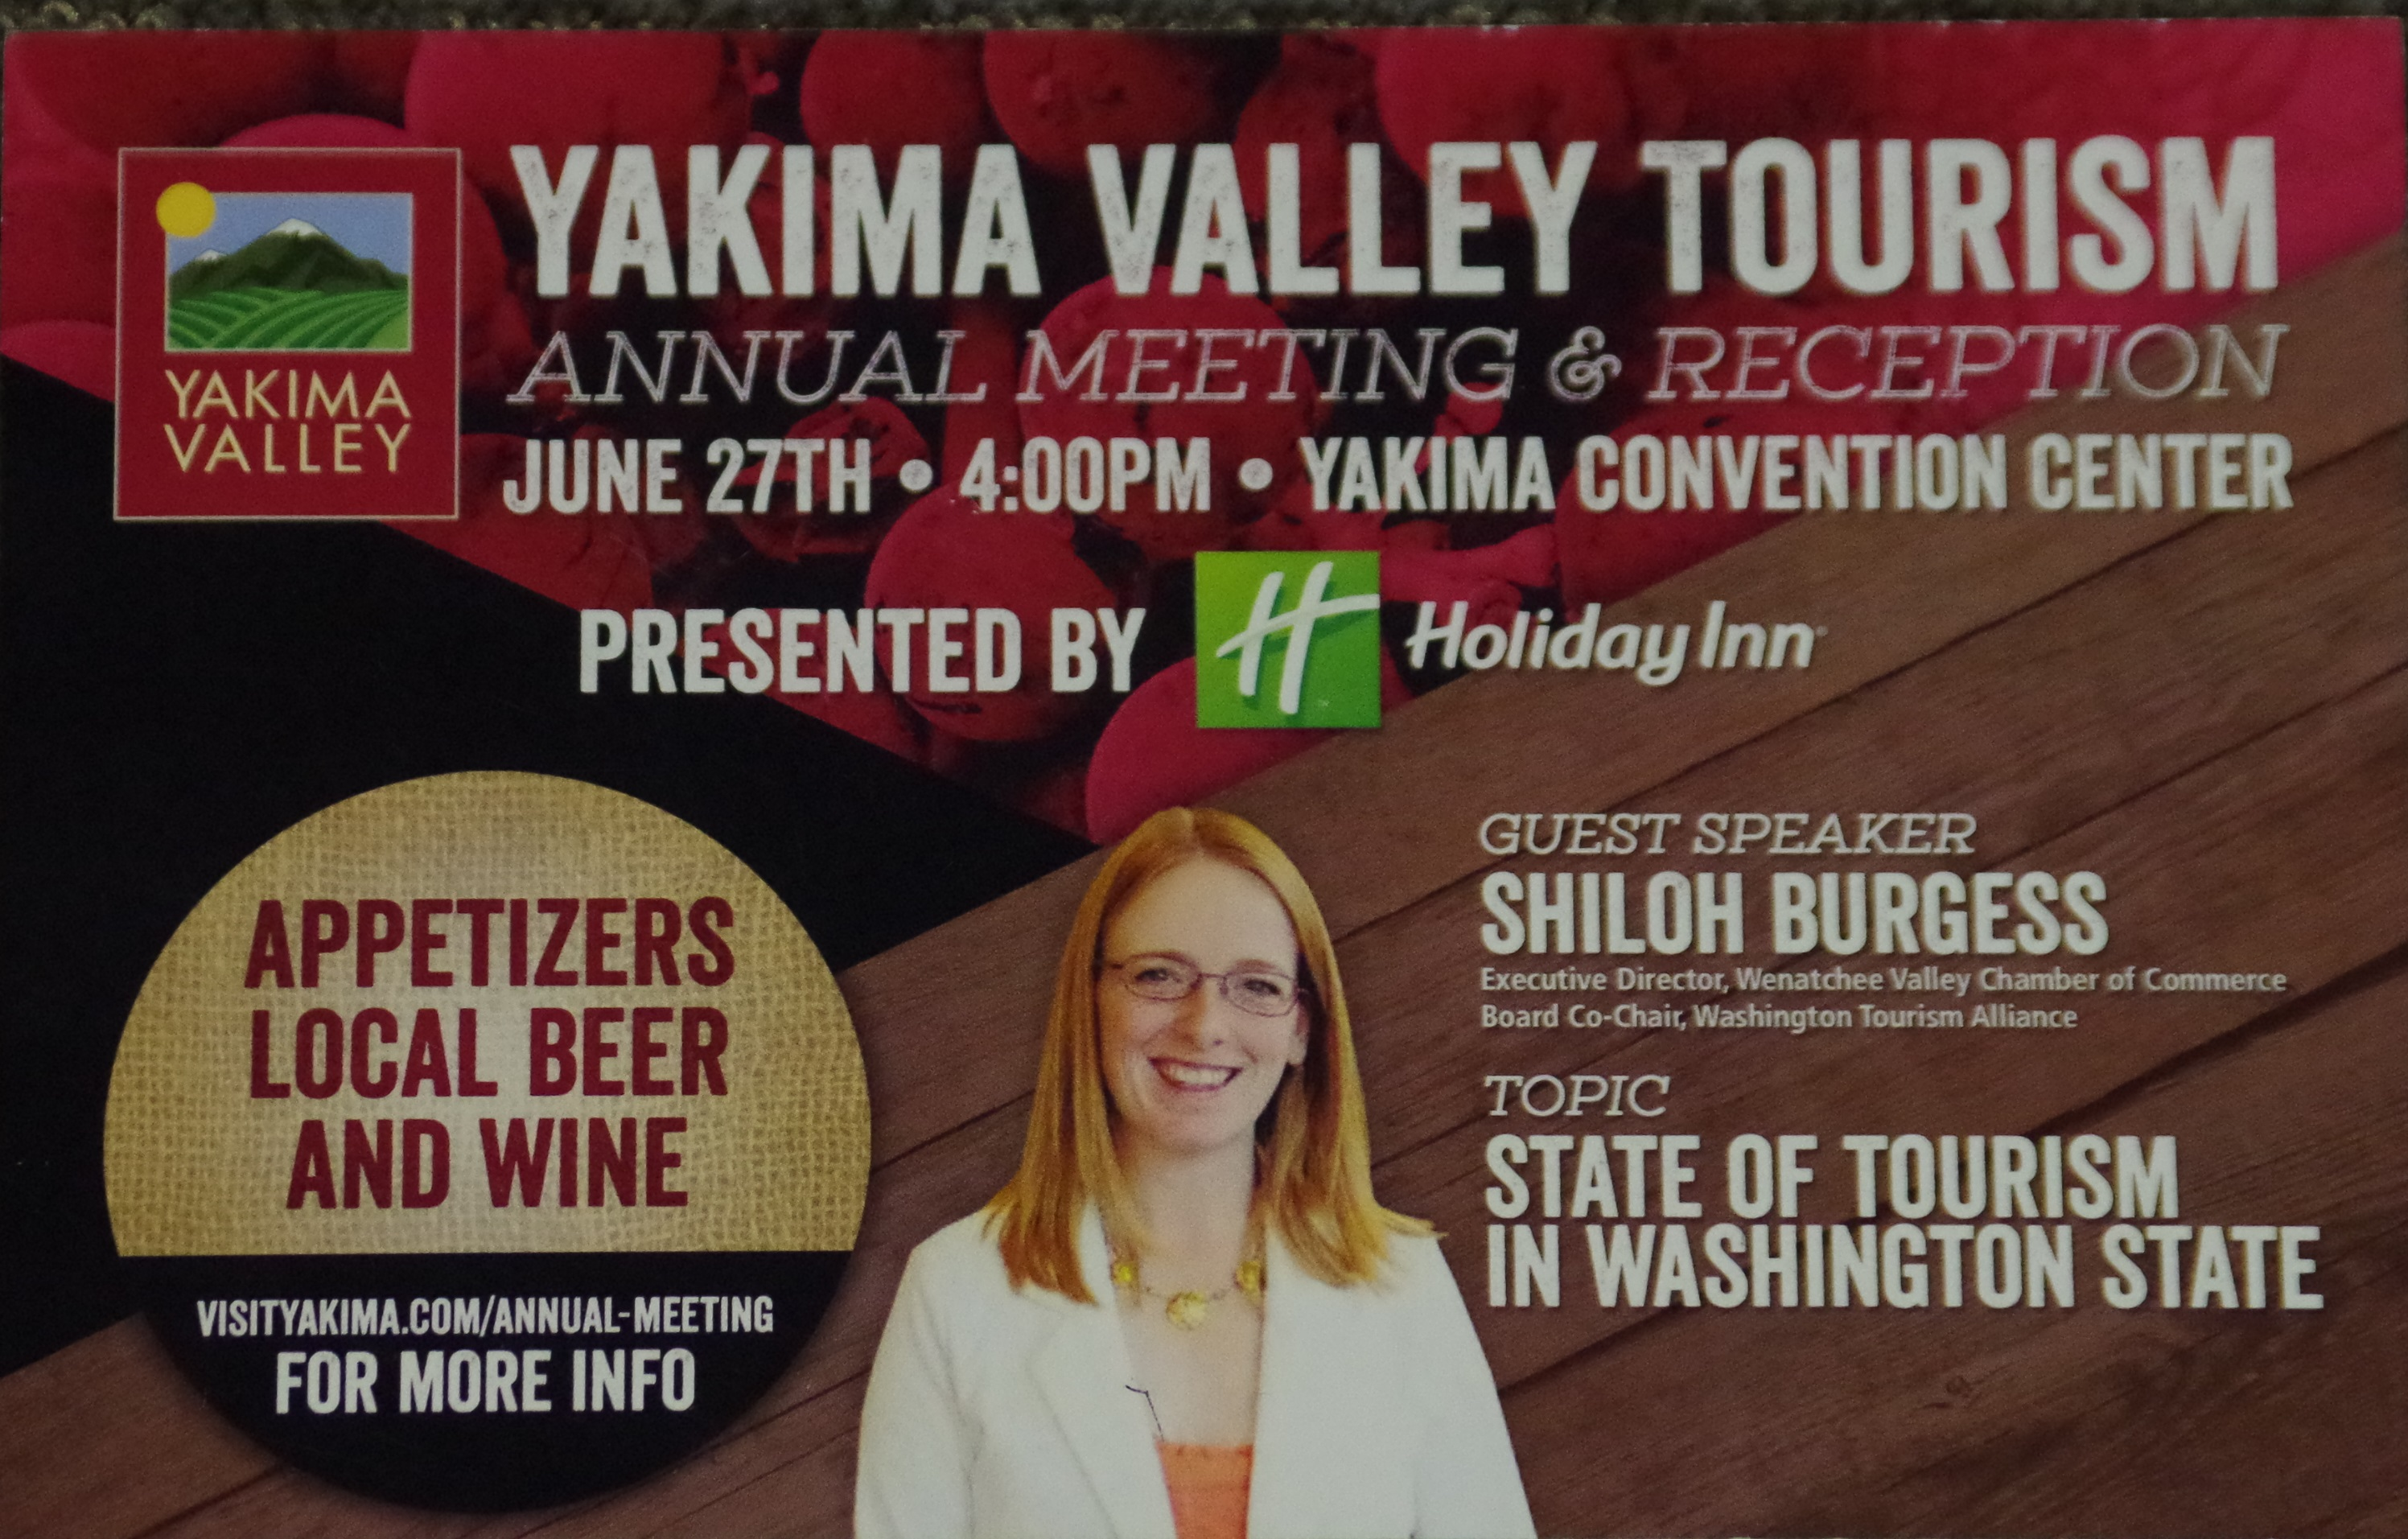 Photo courtesy of Yakima Valley Tourism